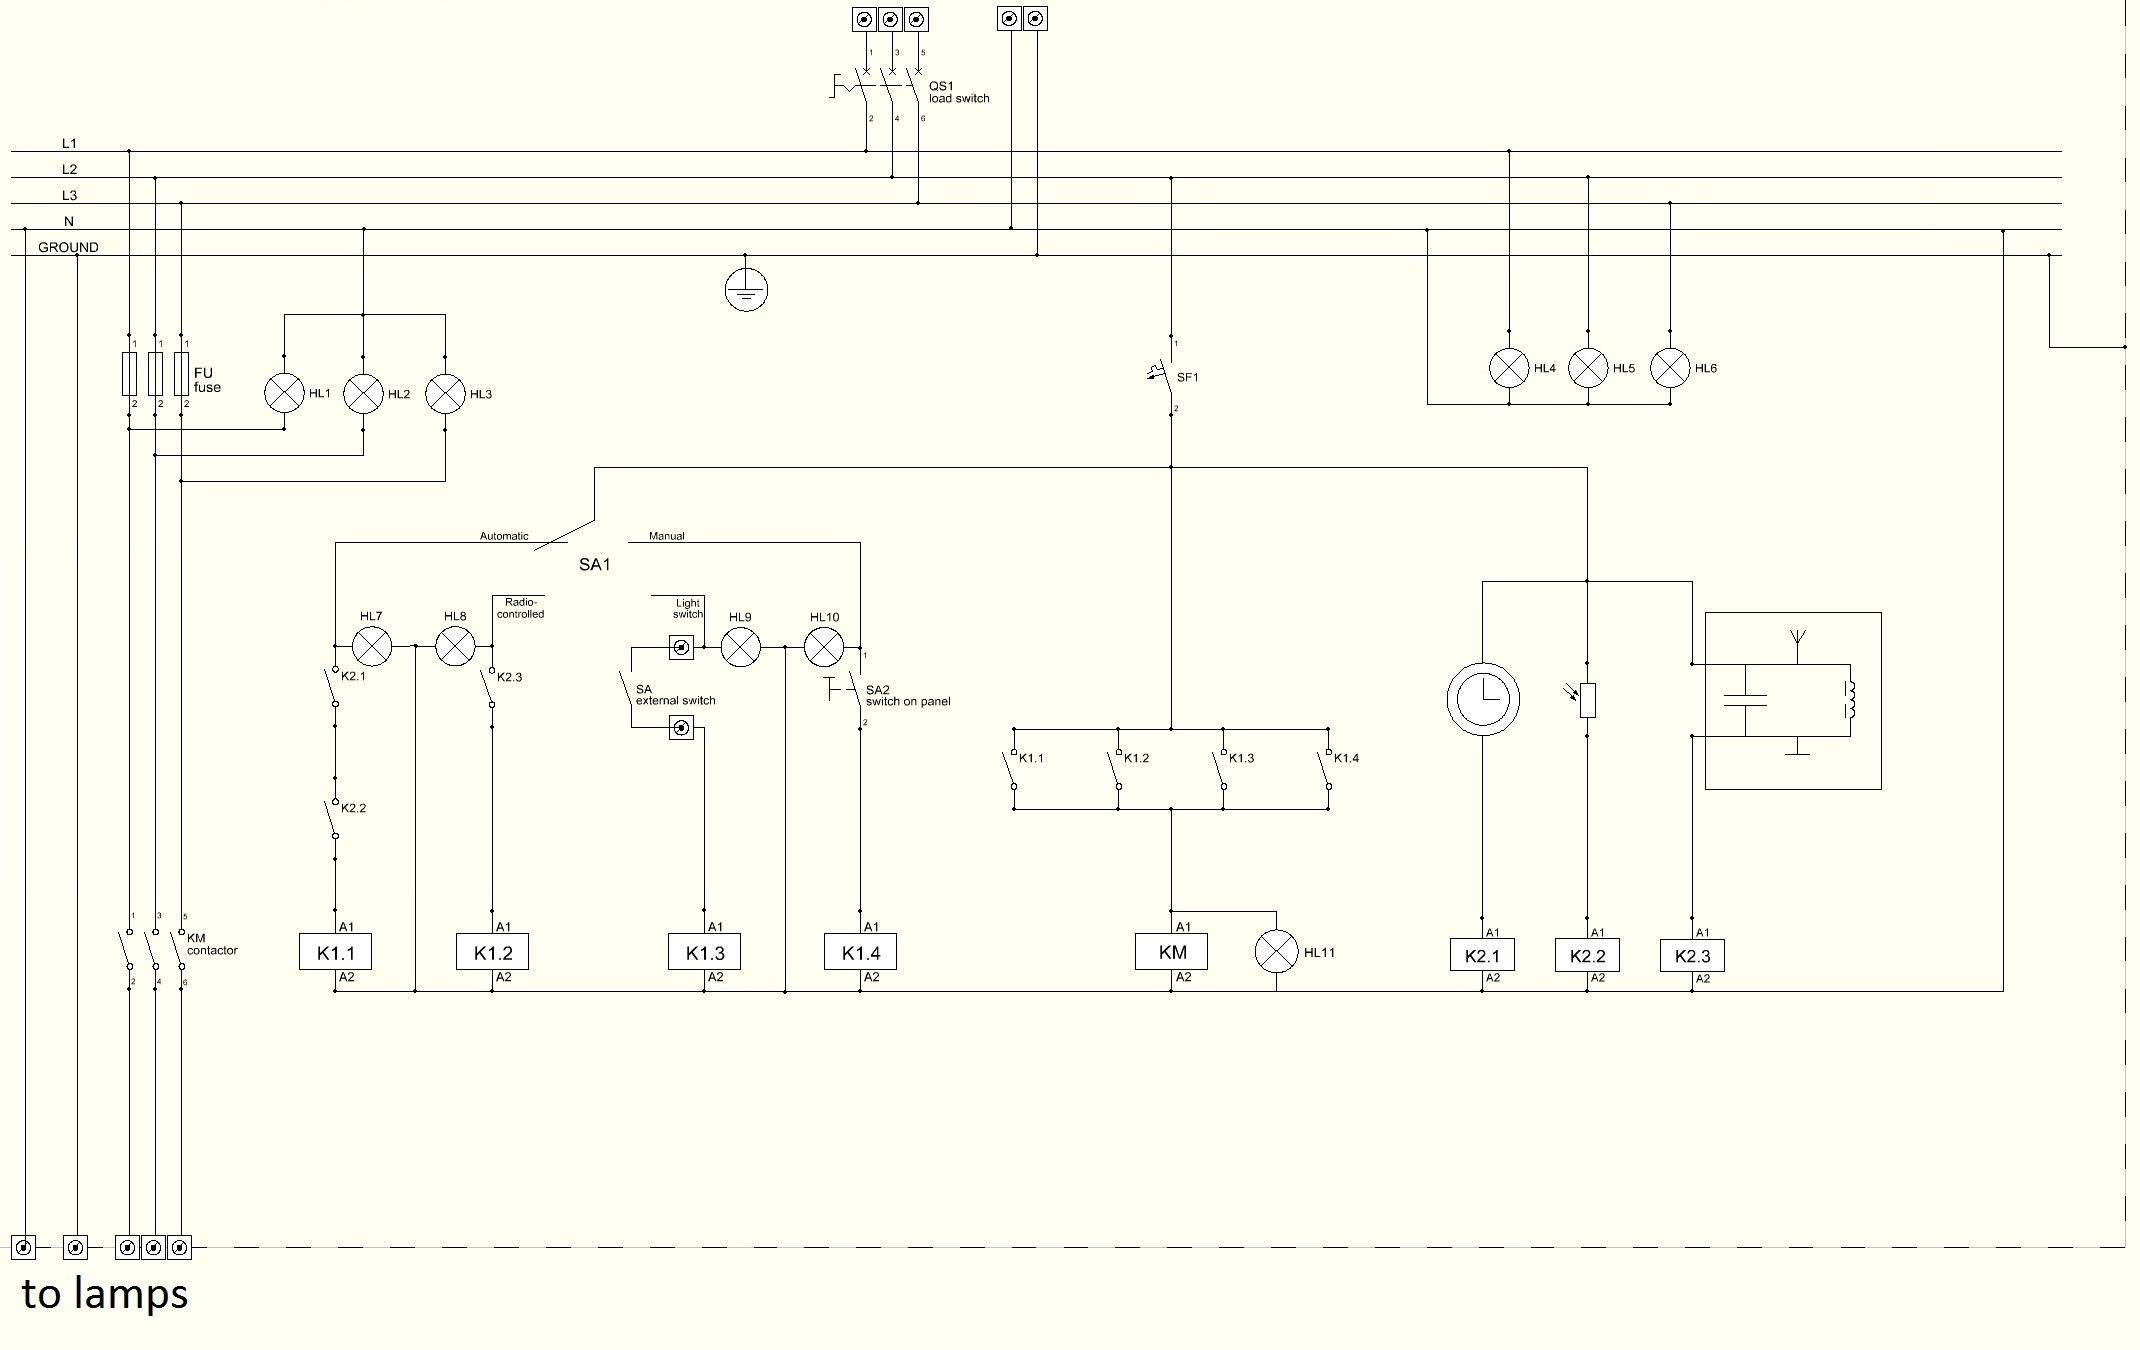 File:wiring Diagram Of Lighting Control Panel For Dummies - Lamp Wiring Diagram